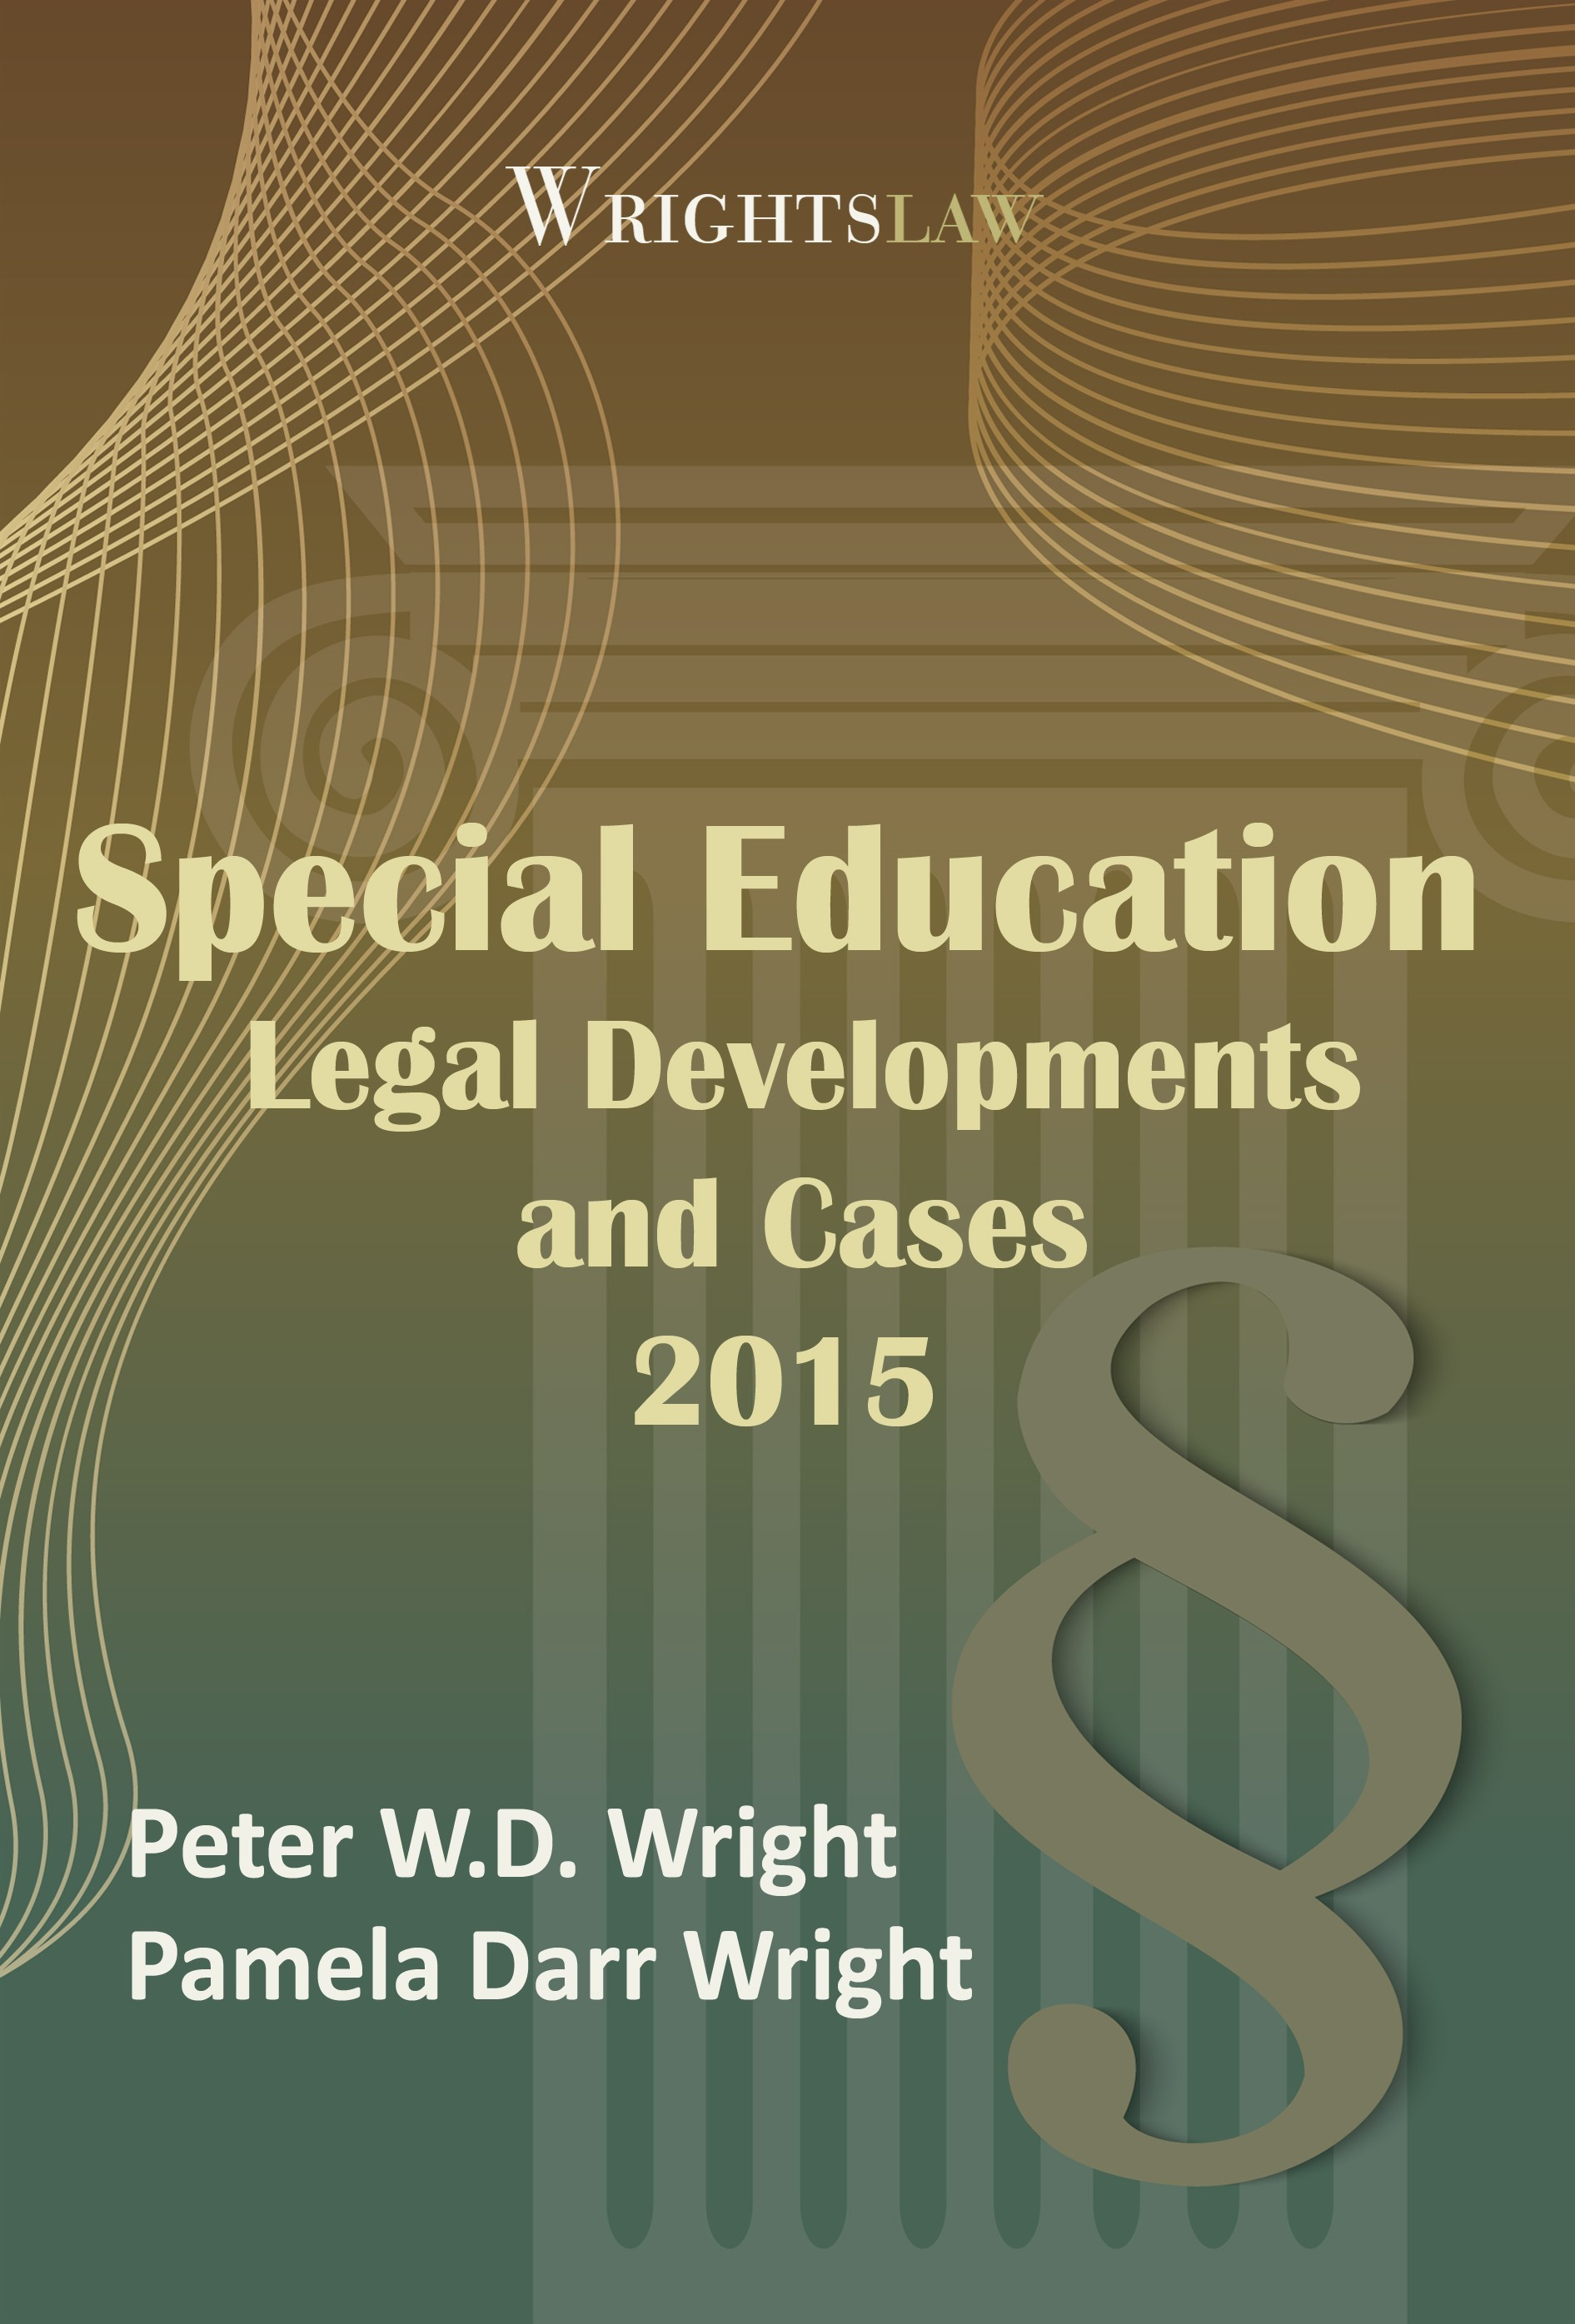 Wrightslaw Special Education Legal Developments and Cases 2015